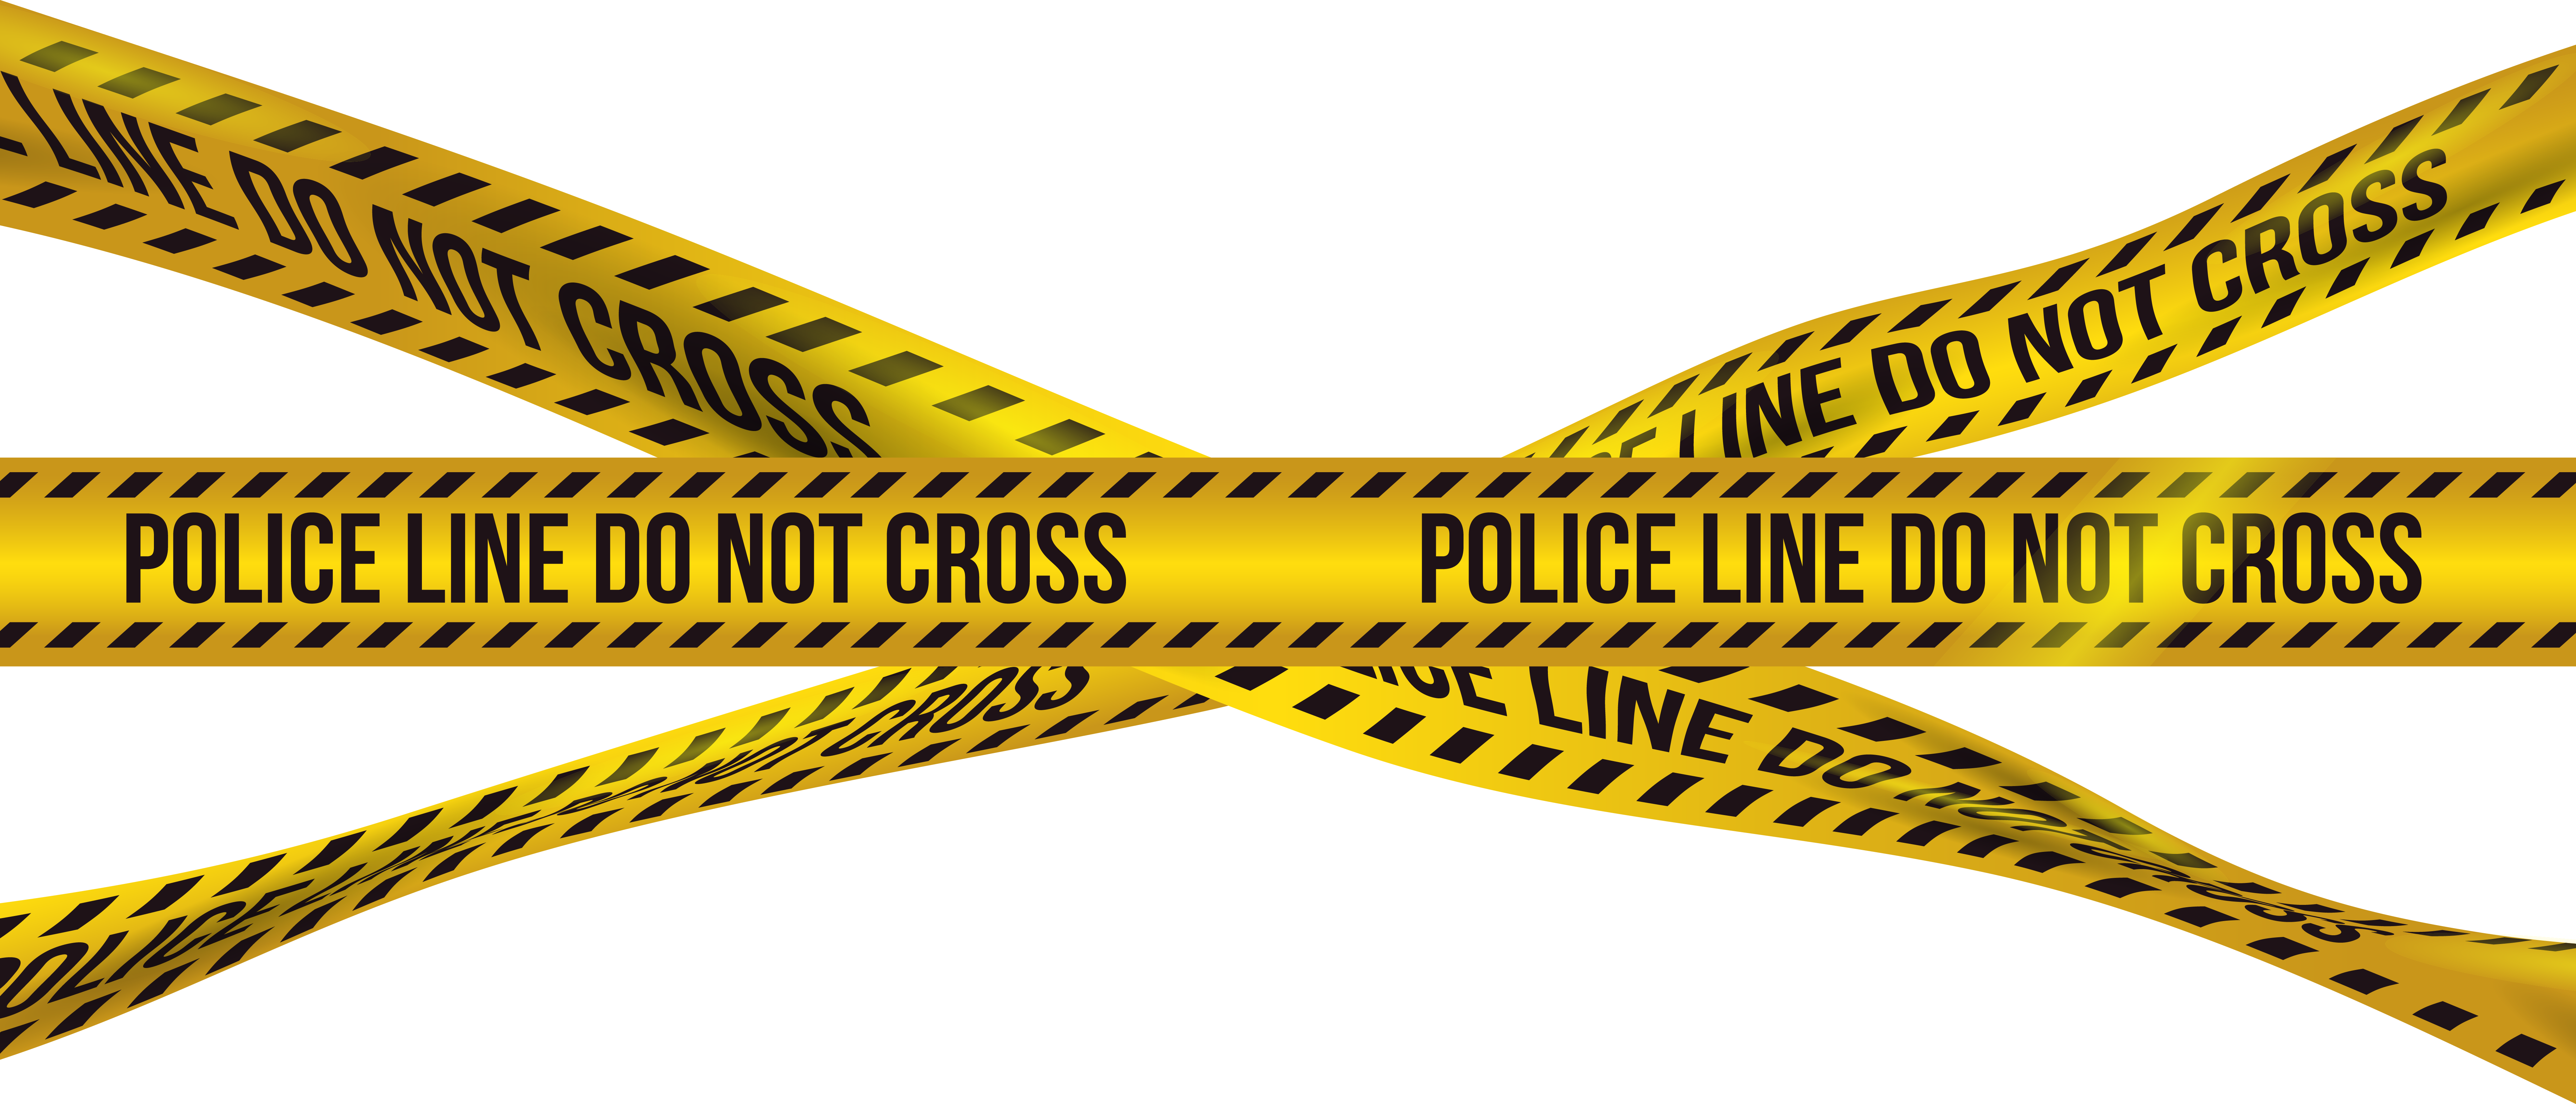 Police line do not cross png. Barricade crime tape clip